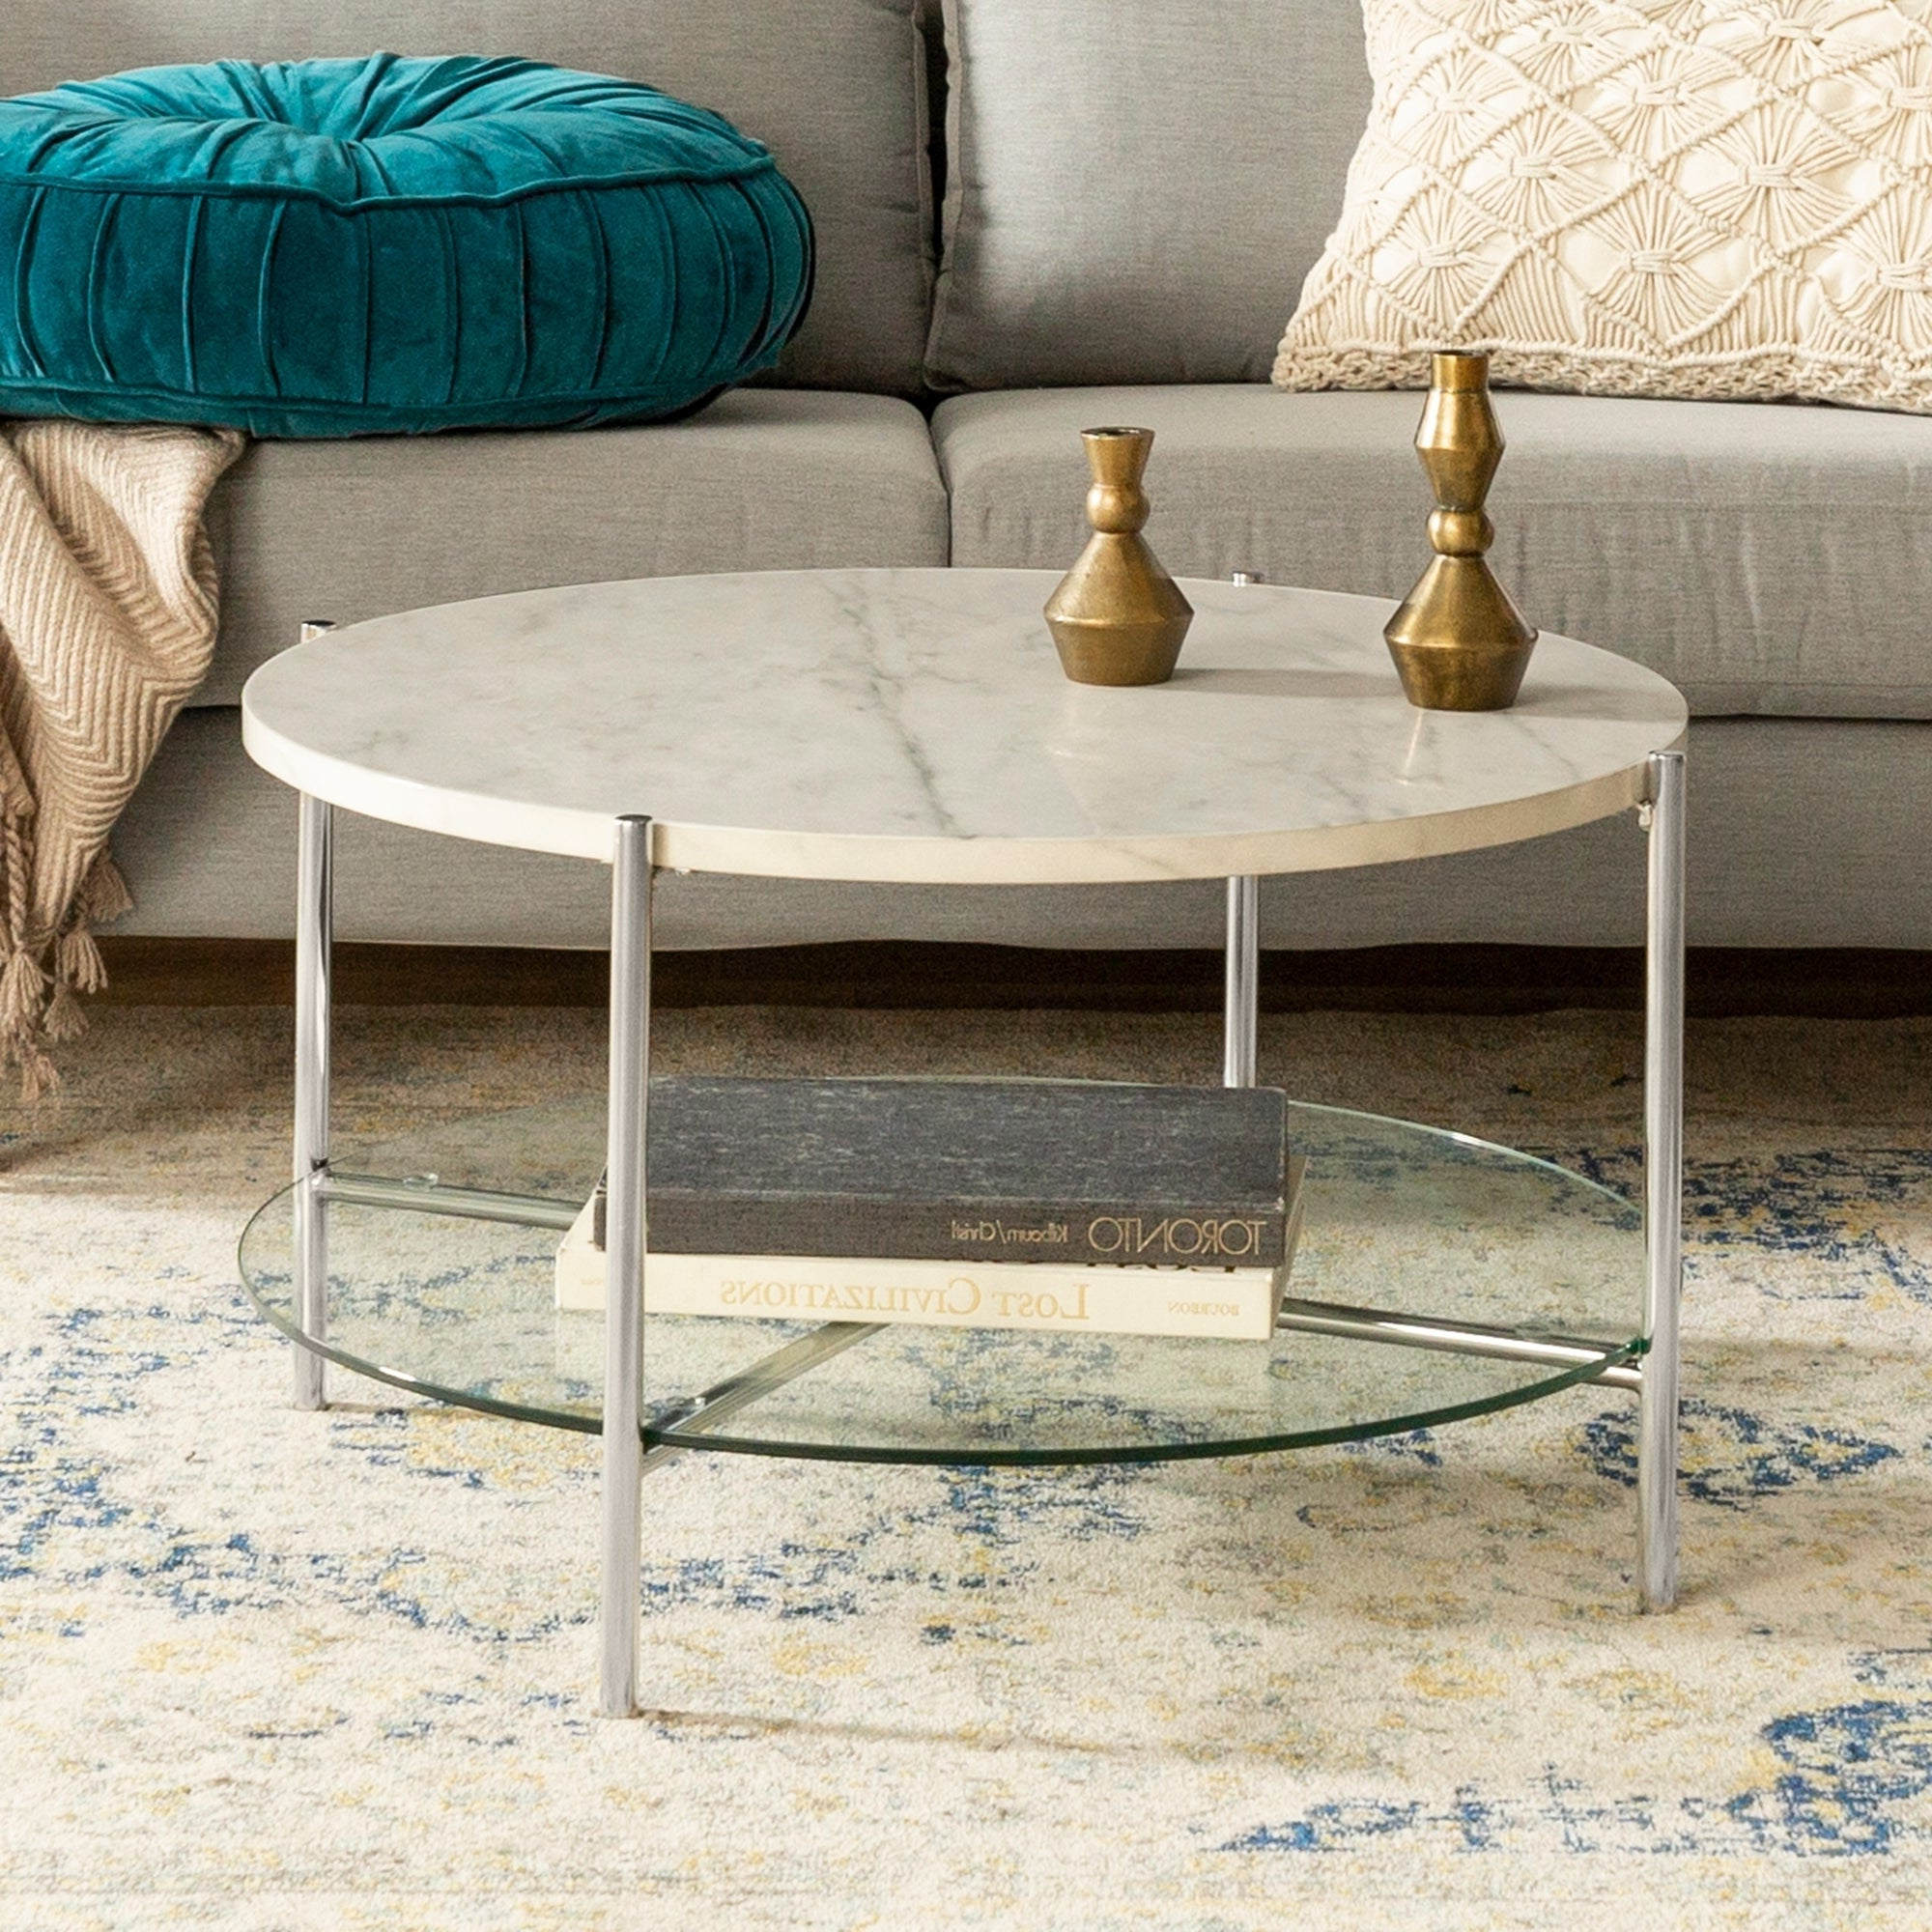 Trendy Silver Orchid Ipsen Round Coffee Tables With X Base In Silver Orchid 32 Inch Ipsen Round Coffee Table, Modern, Faux Marble Accent Cocktail Table For Living Room – 32 X 32 X 17h (View 6 of 20)